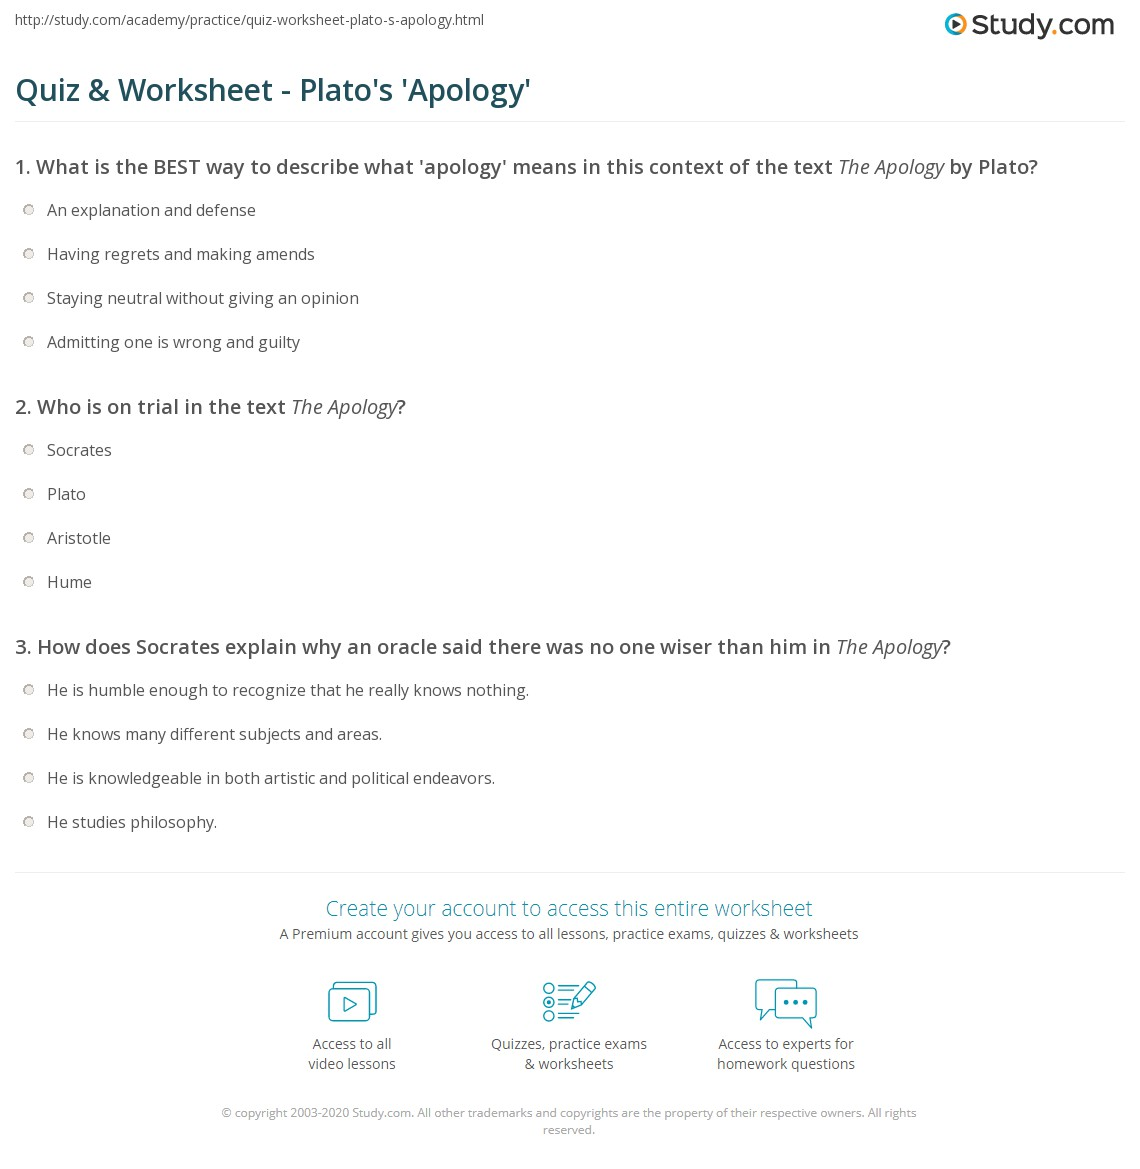 quiz worksheet plato s apology com who is on trial in the text the apology socrates